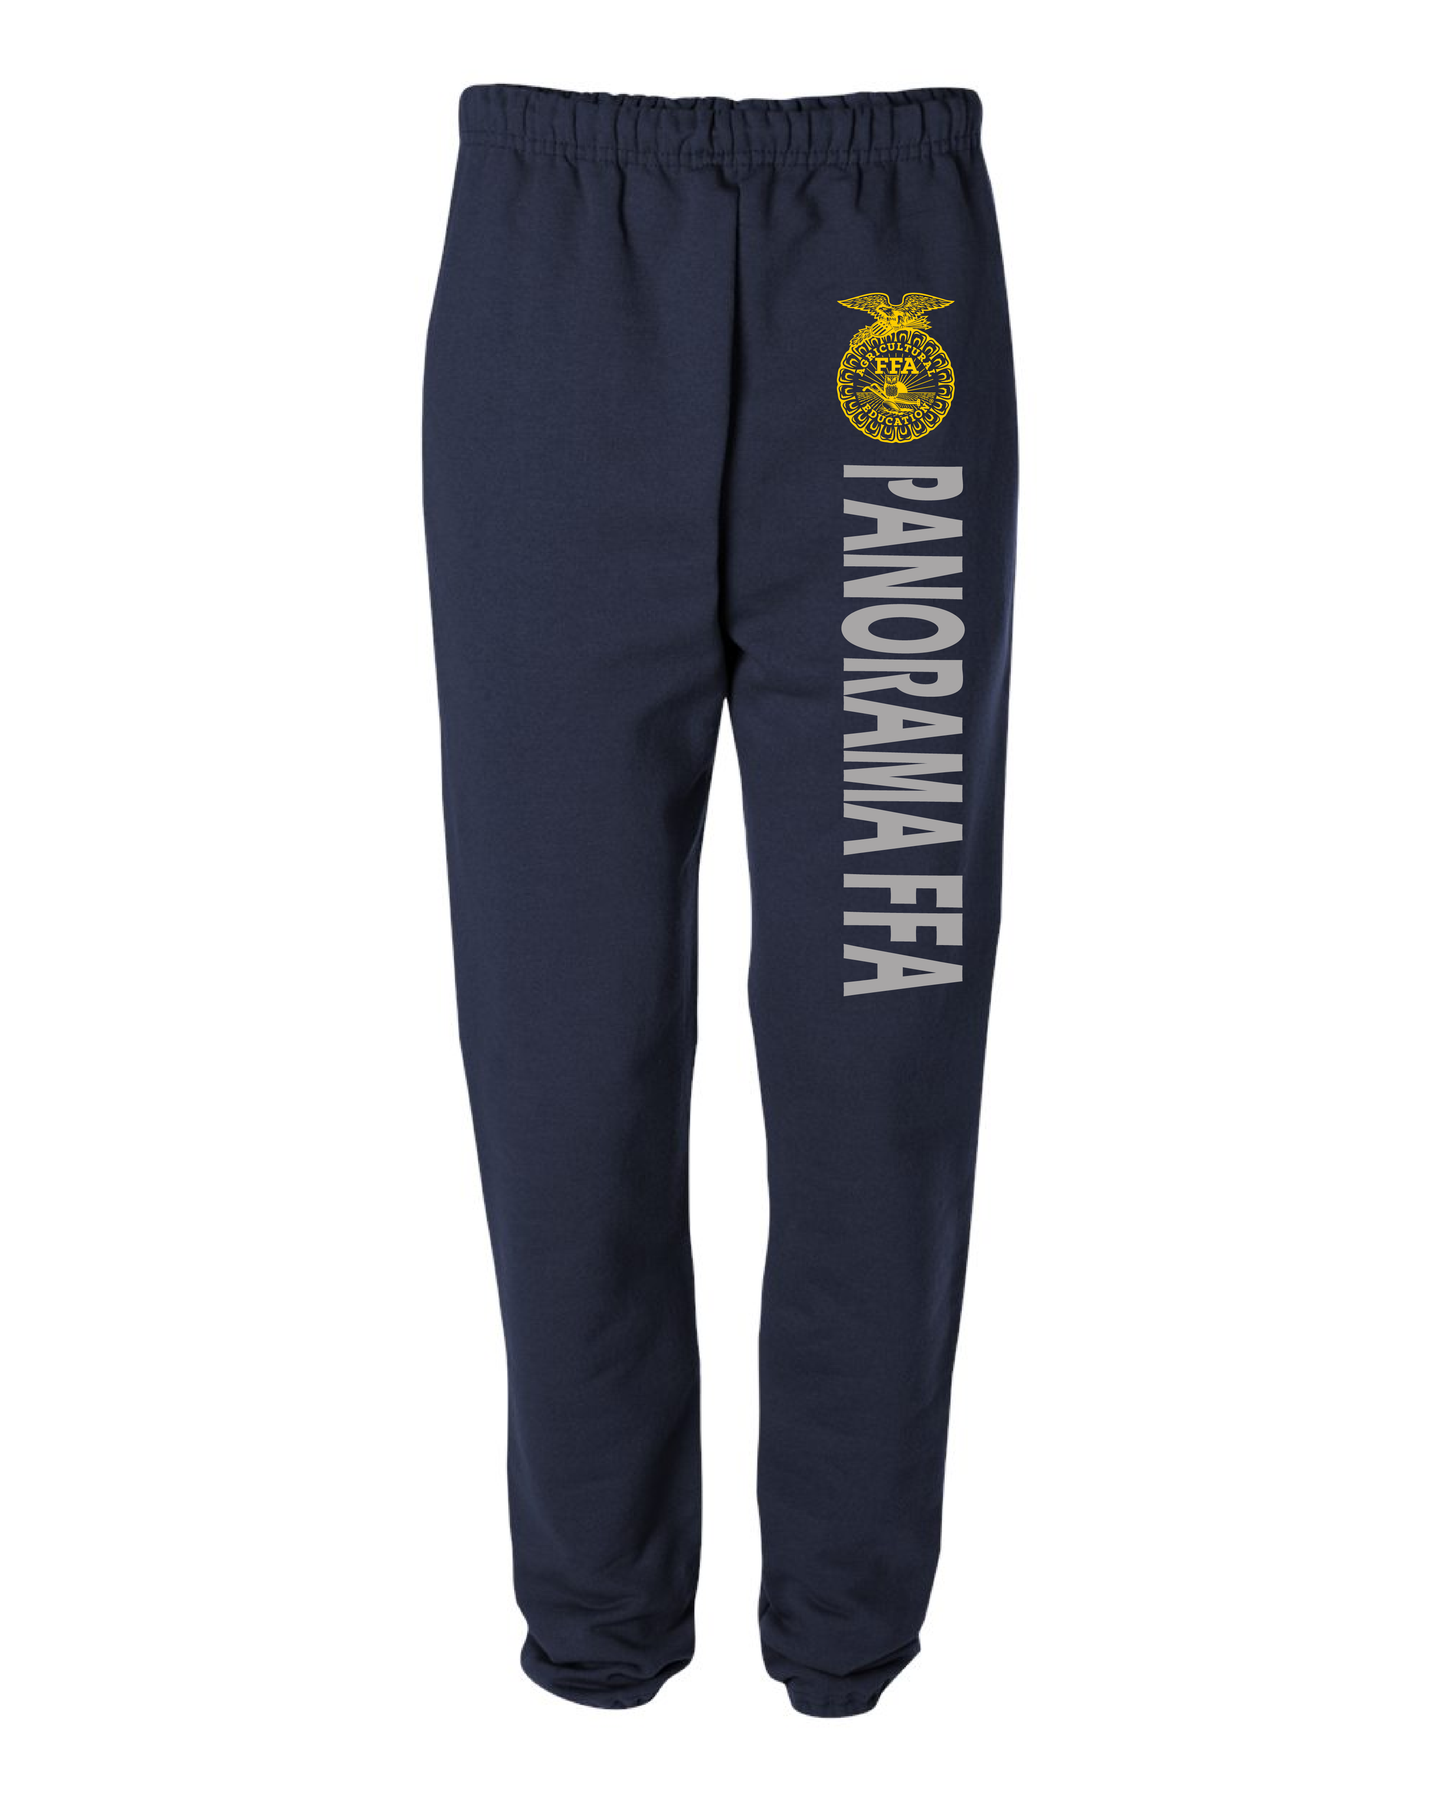 Panorama FFA-Jerzees - SUPER SWEATS Sweatpants with Pockets - Navy-4850MR